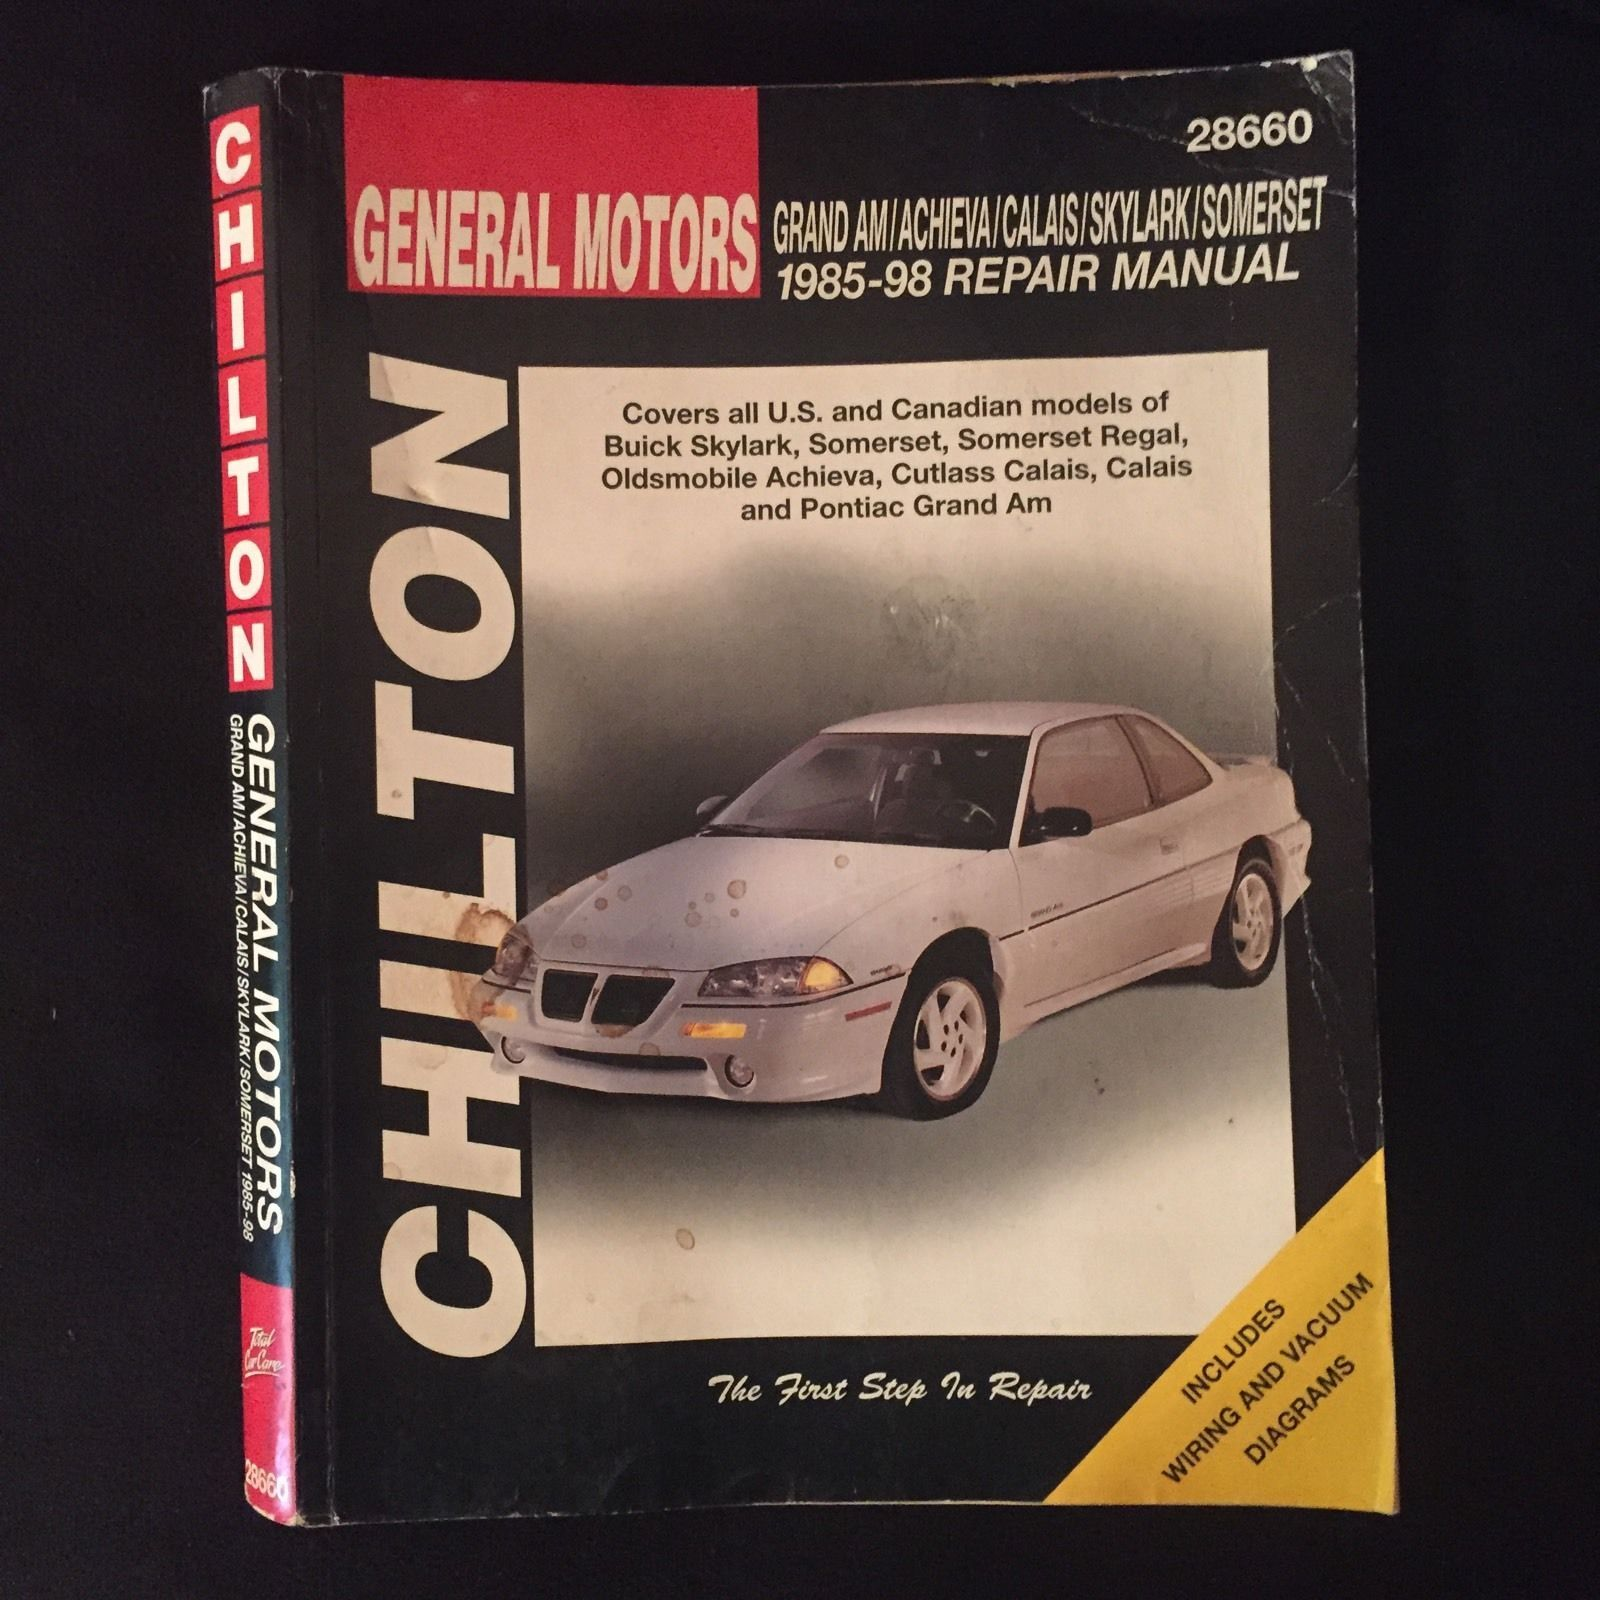 ManualsPRO - GM Grand Am Achieva Calais Skylark Somerset 1985-98 Chilton  Auto RepairManual https